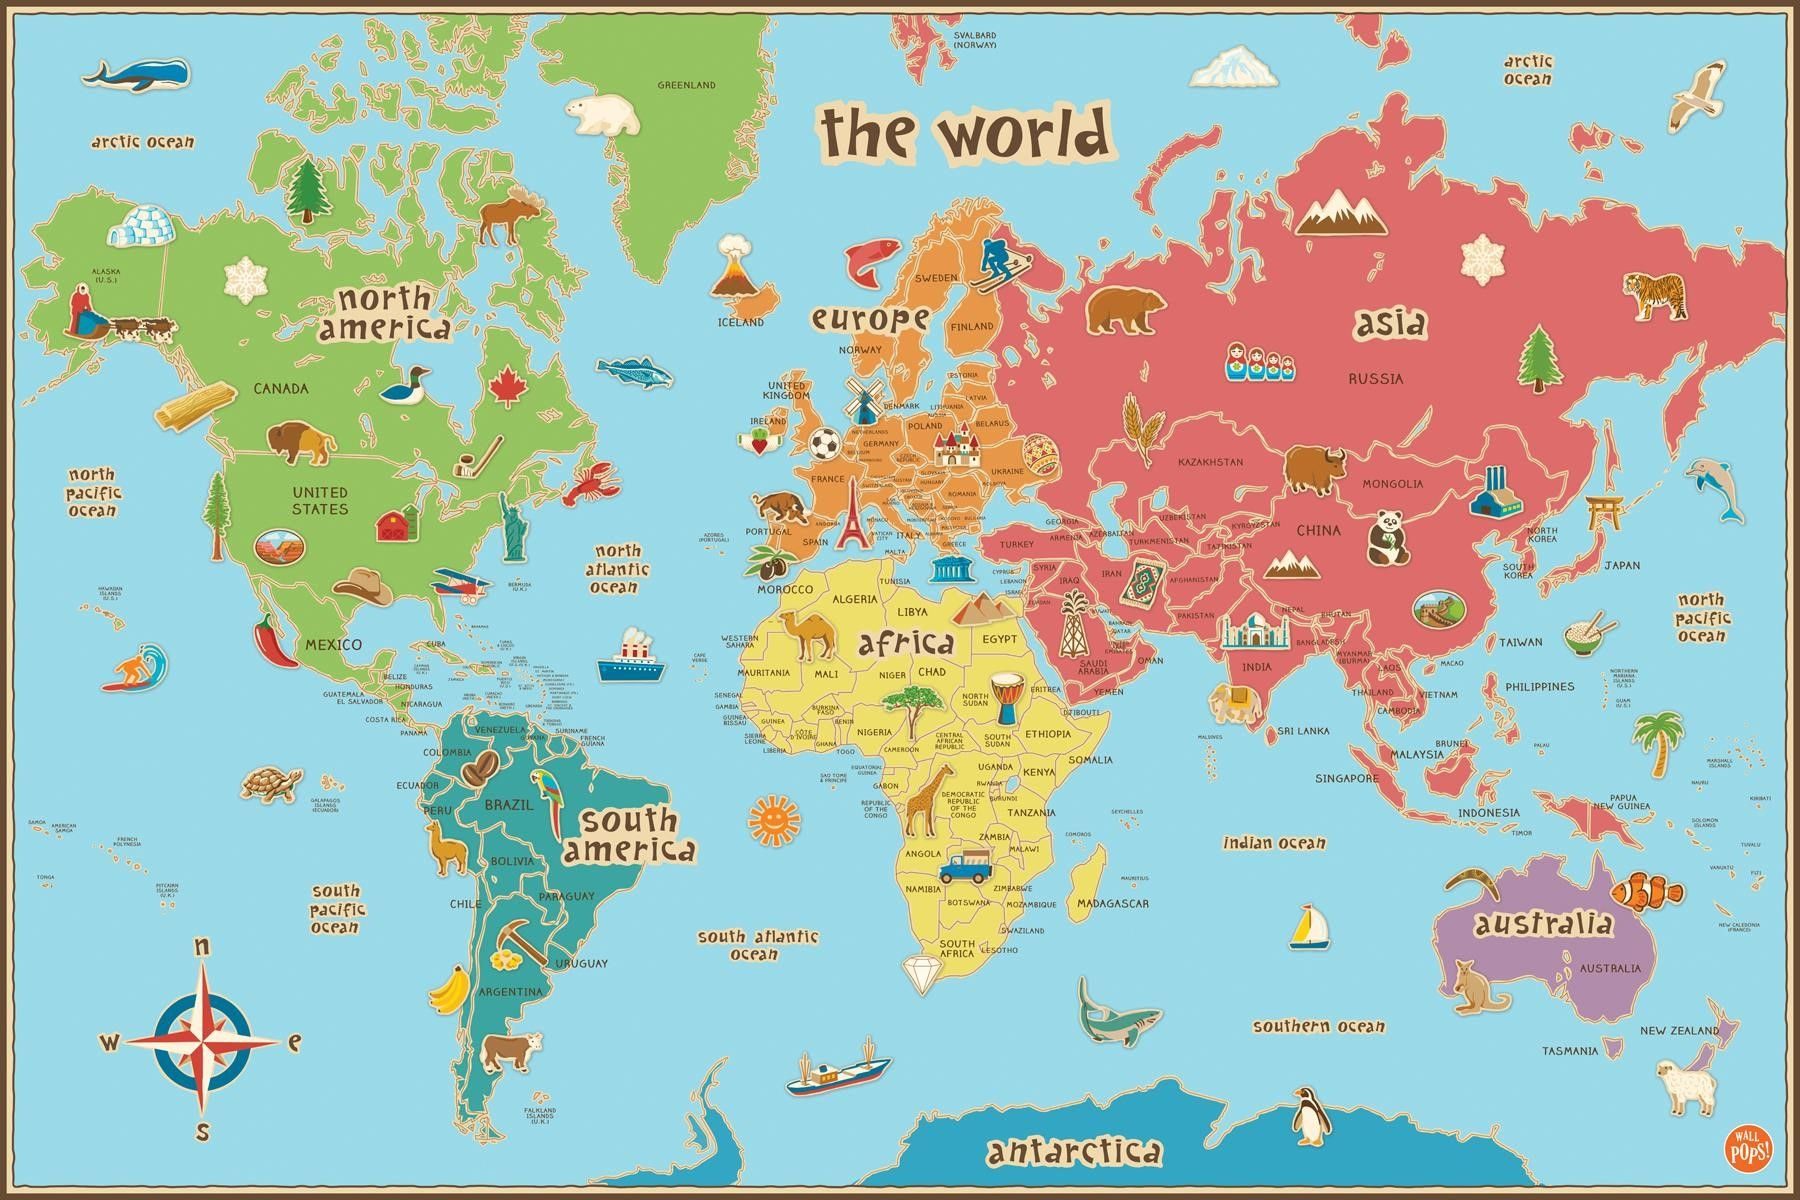 Free Printable World Map For Kids Maps And | Gary's Scattered Mind - Free Printable Custom Maps